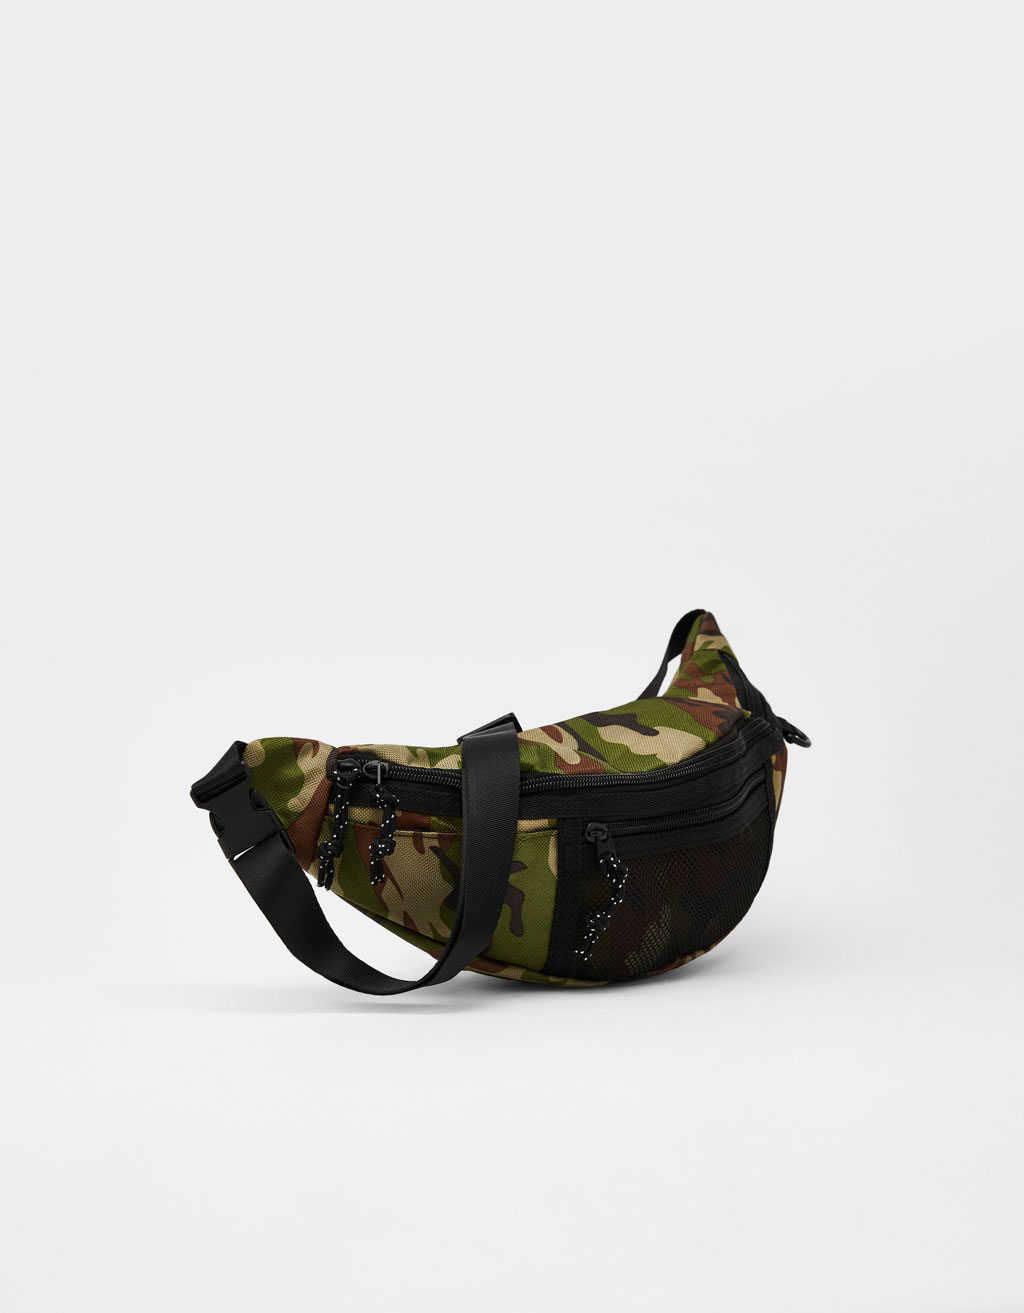 Fanny pack with mesh pocket